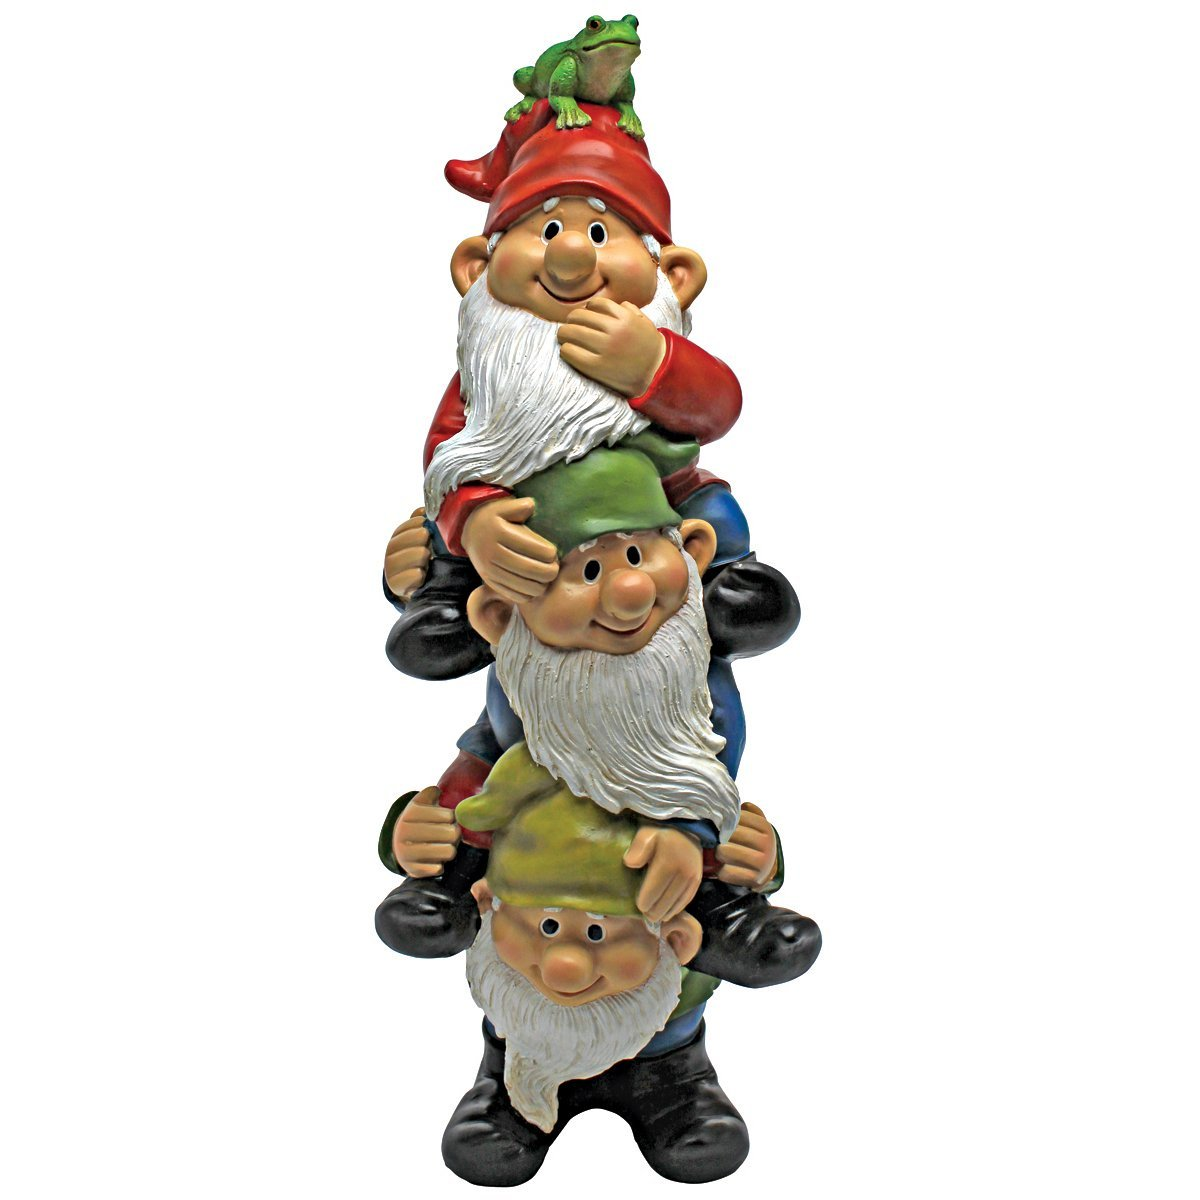 Design Toscano Garden Gnome Statue - Tower of Three Gnomes - Outdoor Garden Gnomes - Funny Lawn Gnome Statues